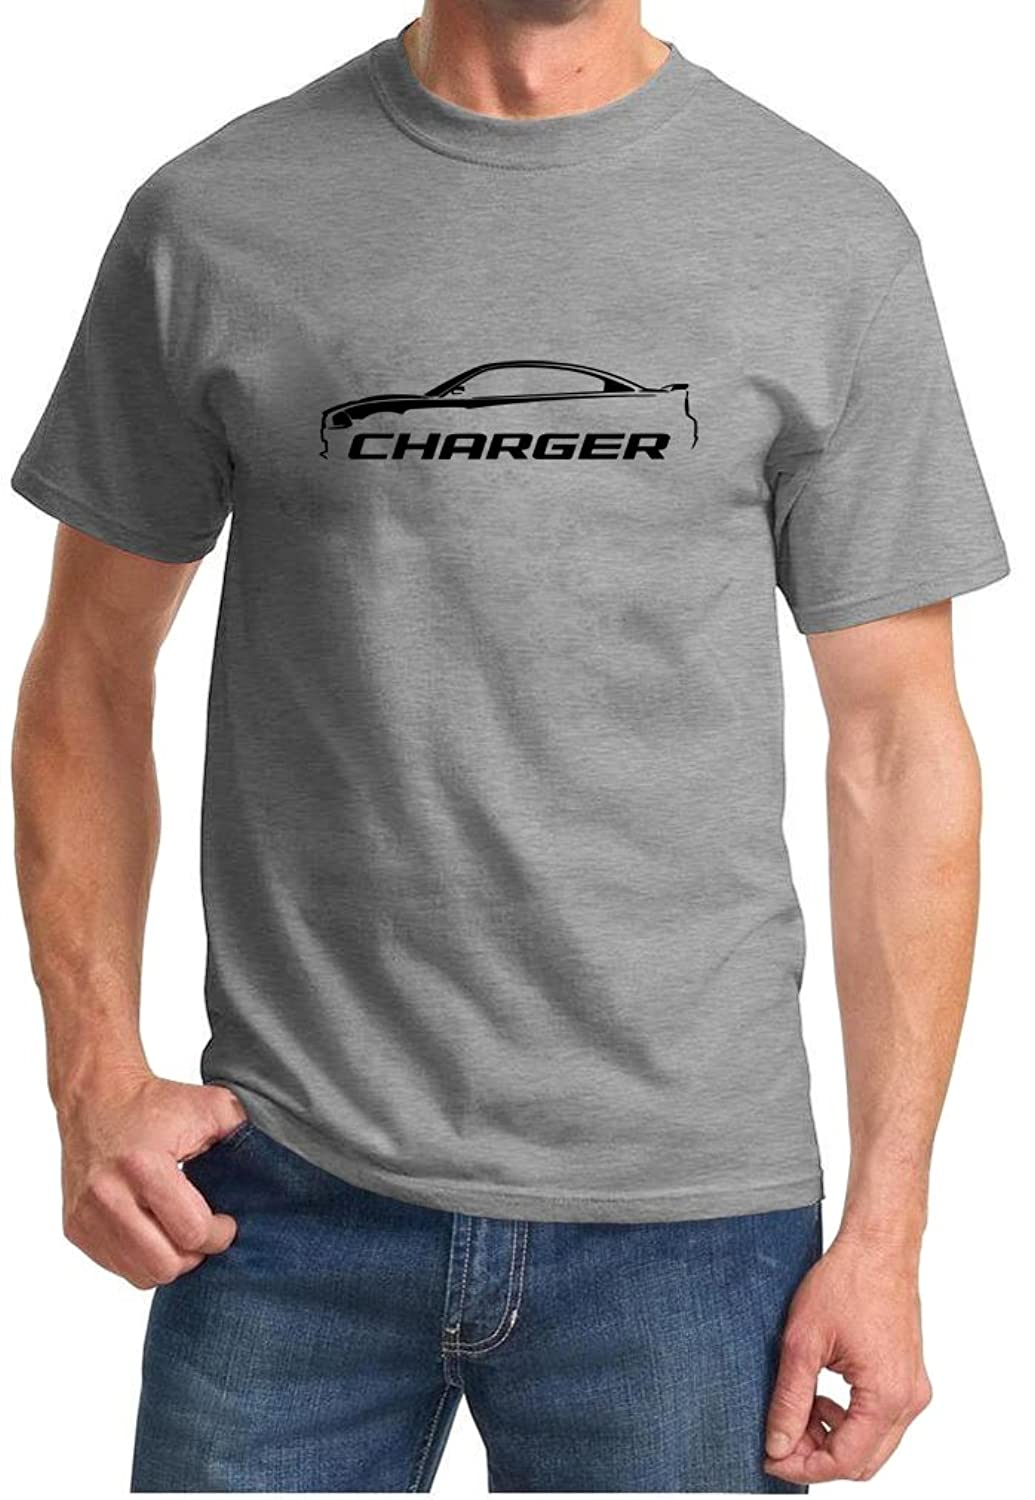 2010-14 Dodge Charger Classic Outline Design Tshirt 3XL grey